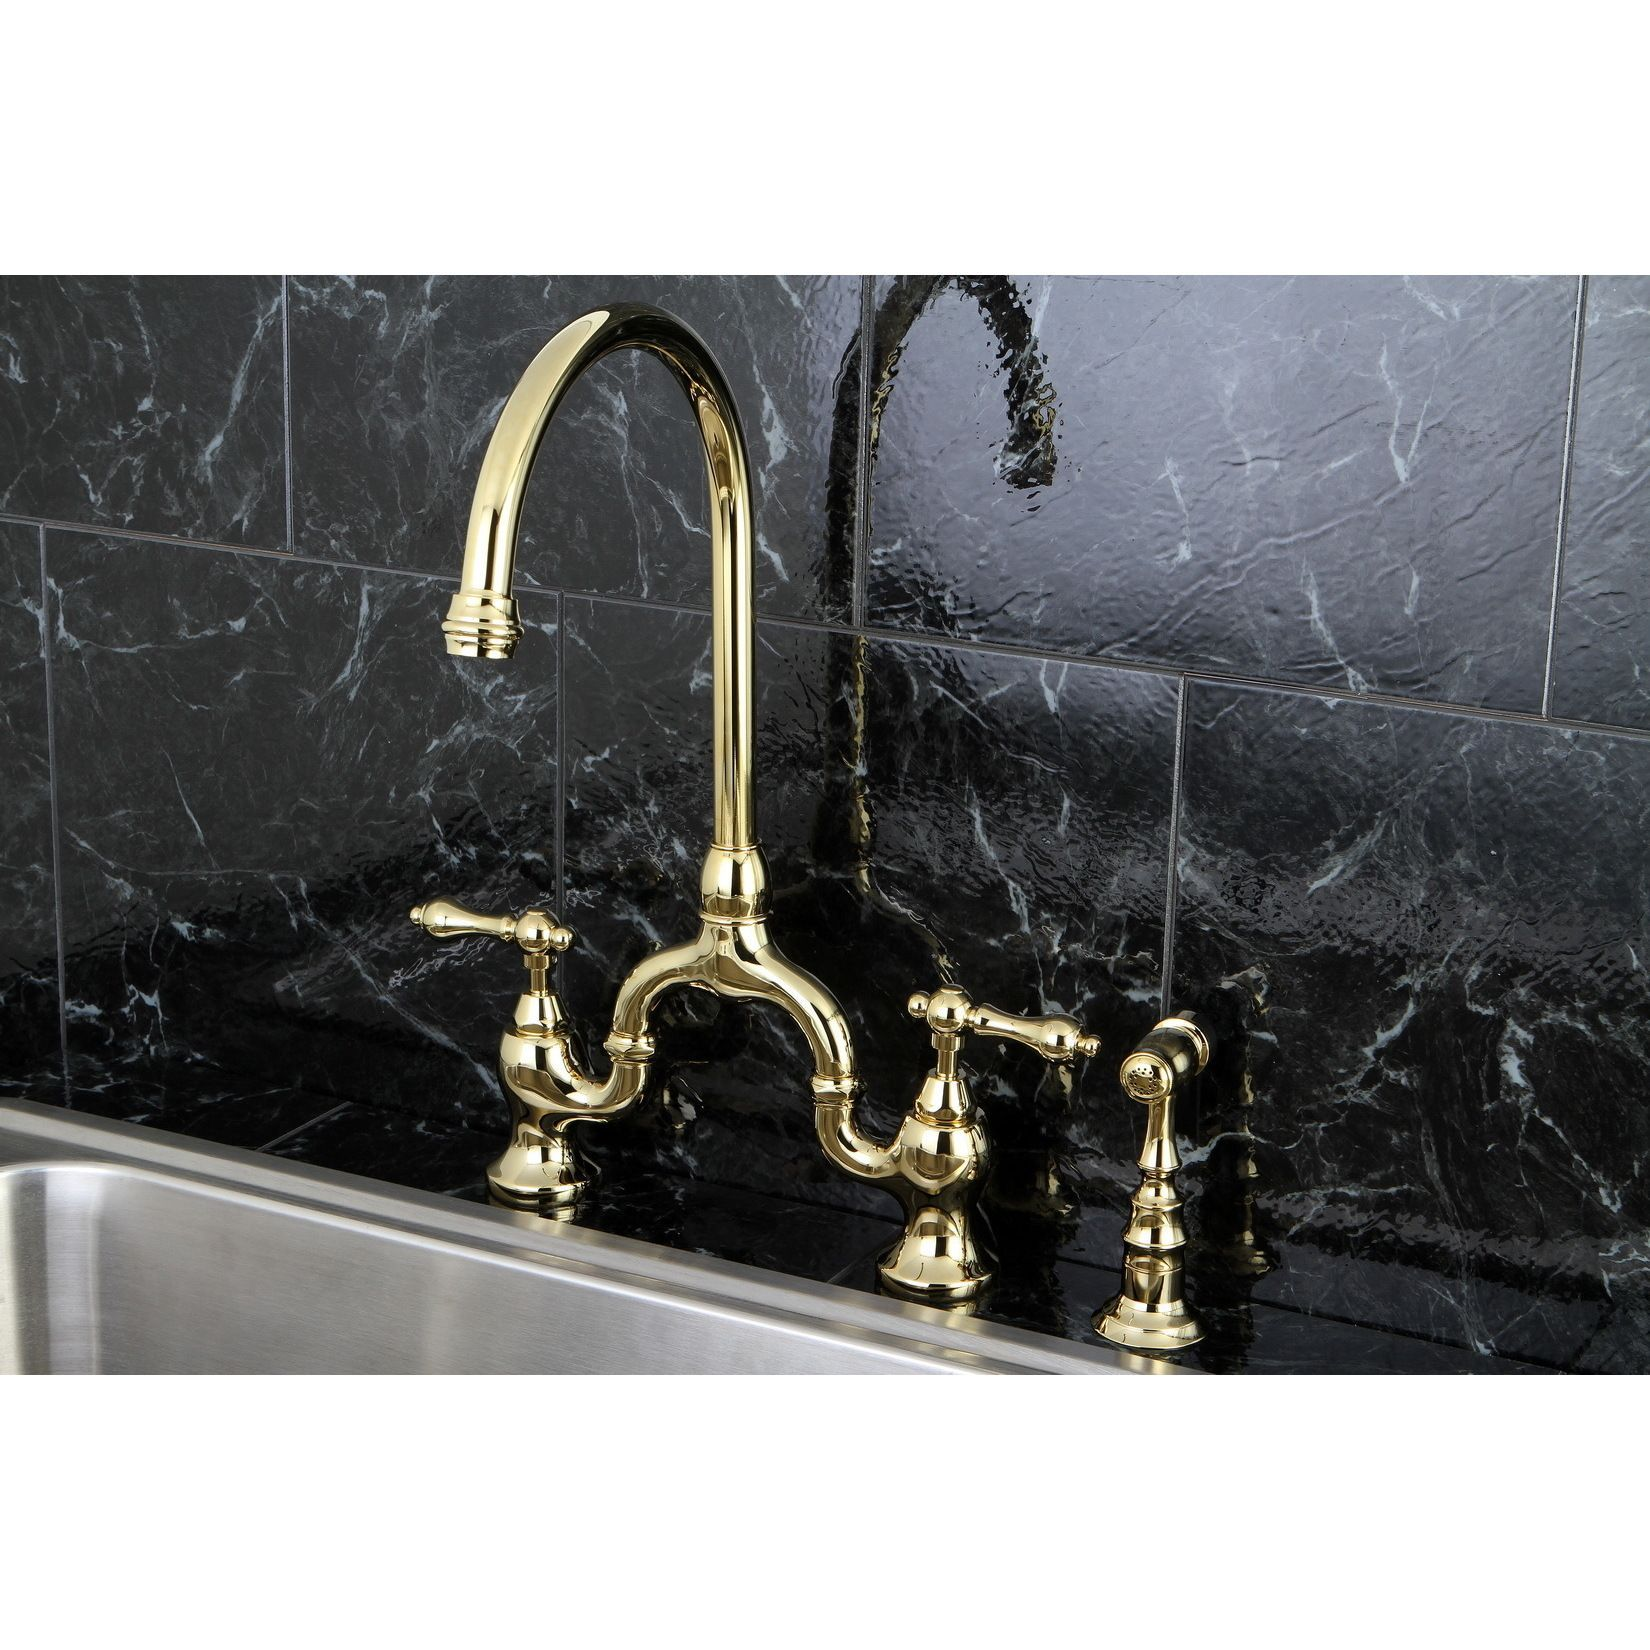 Enhance any kitchen design with this brass kitchen faucet. This high ...